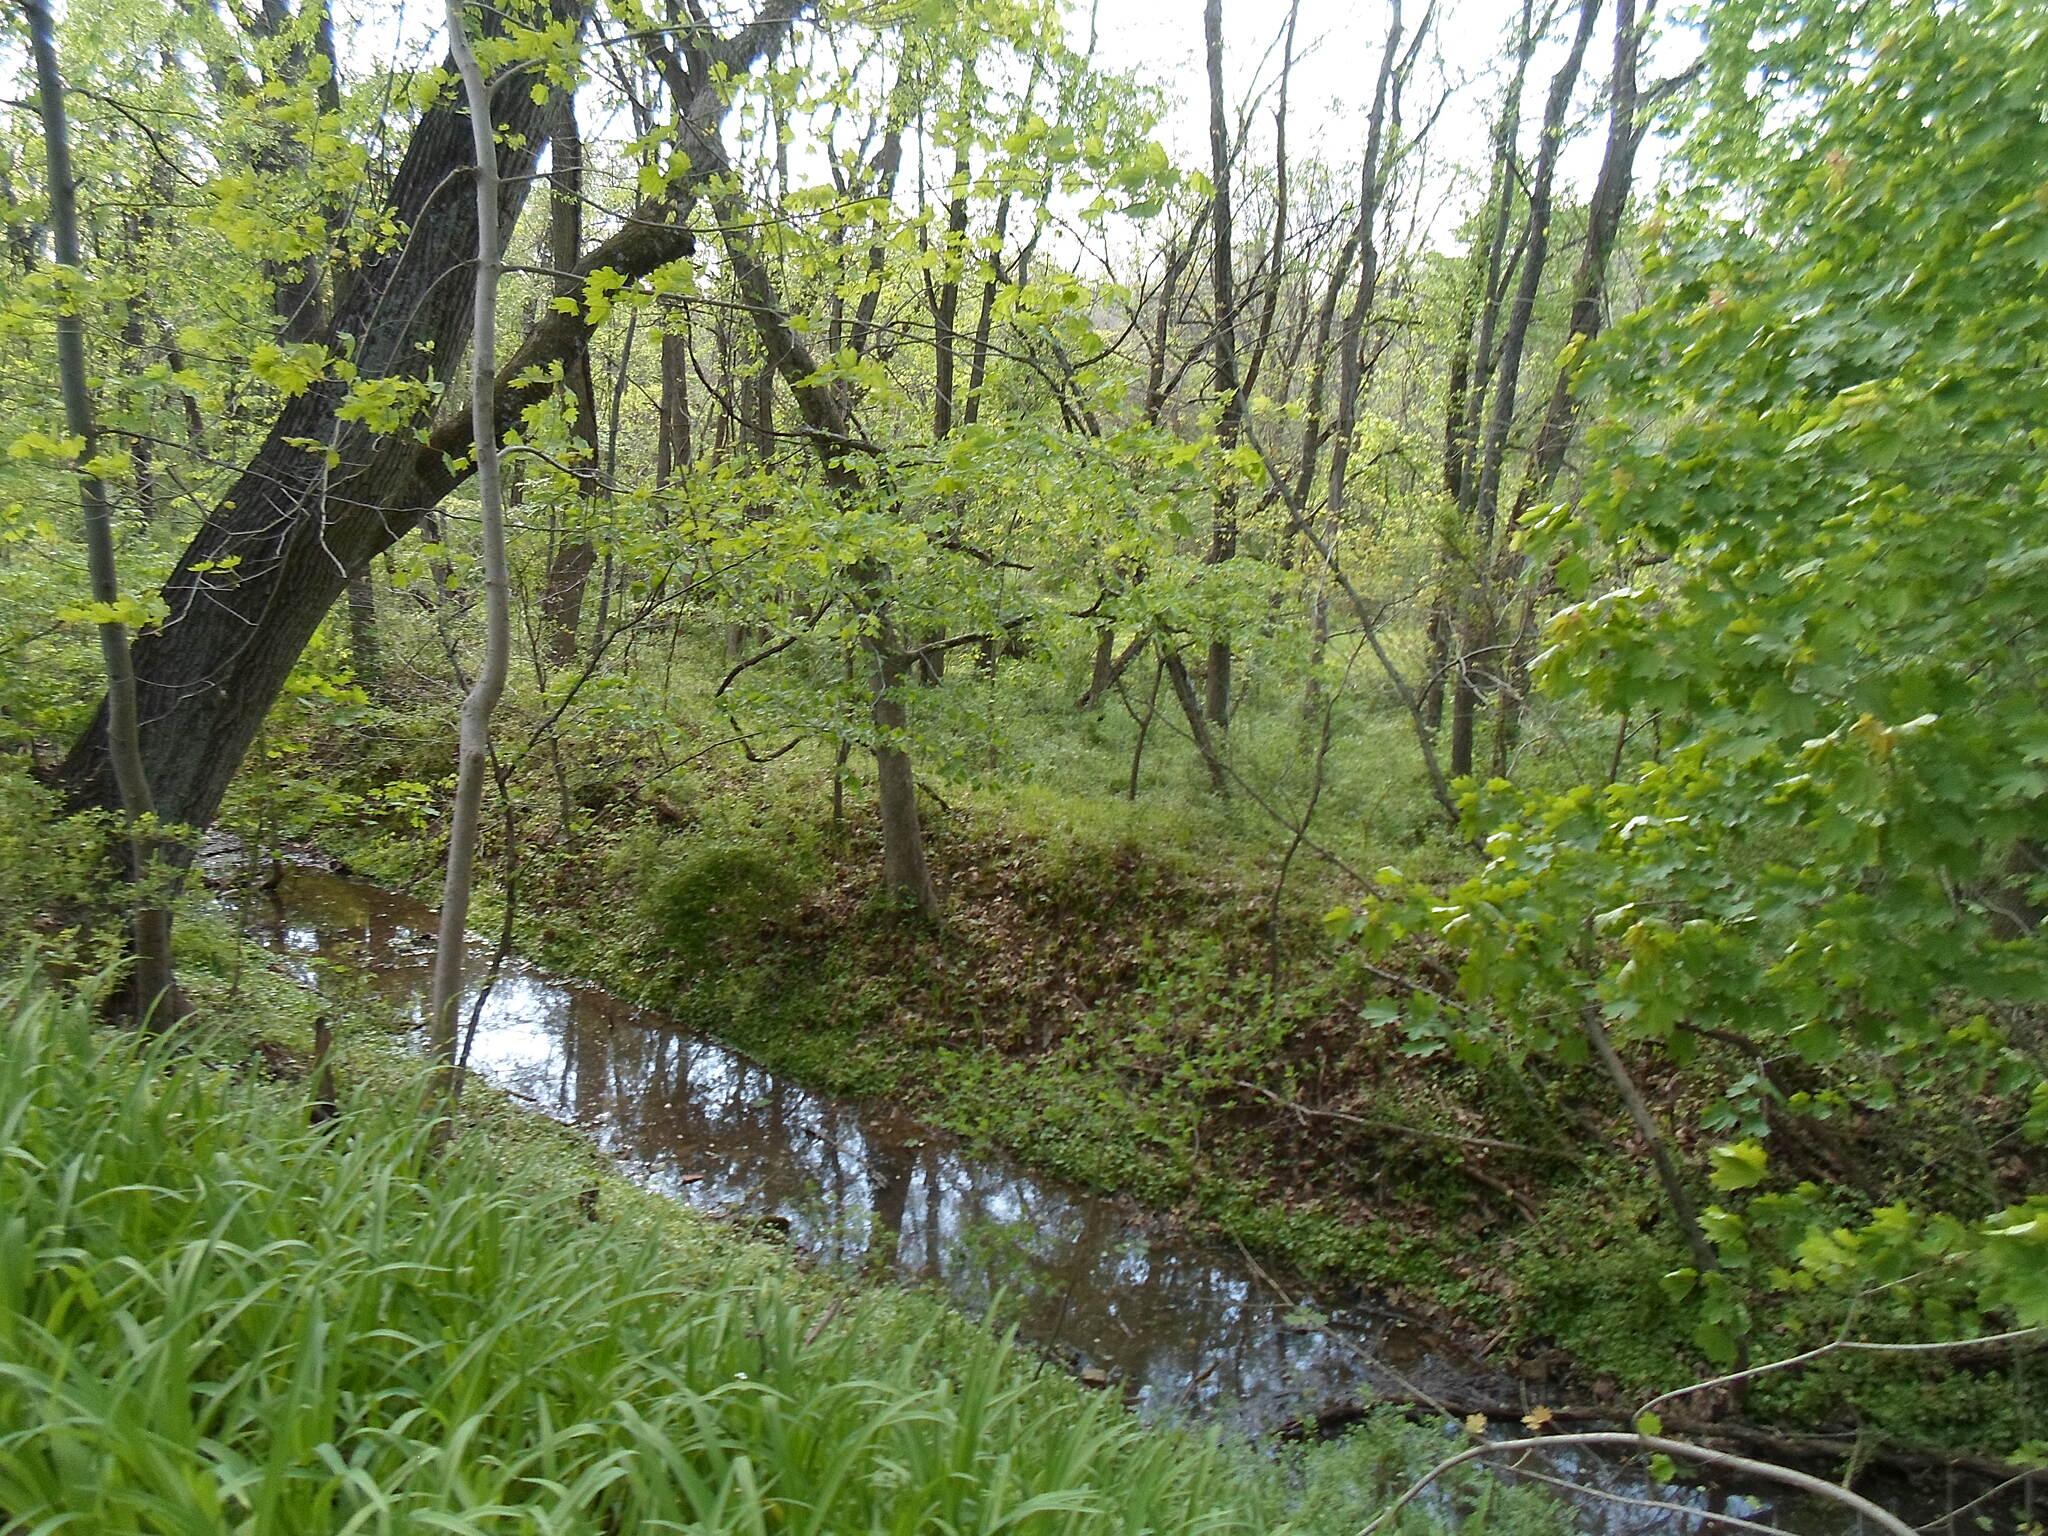 French Creek Trail French Creek Heritage Trail This part of the old mill race was filled with water after spring rainstorms. Taken May 2016.